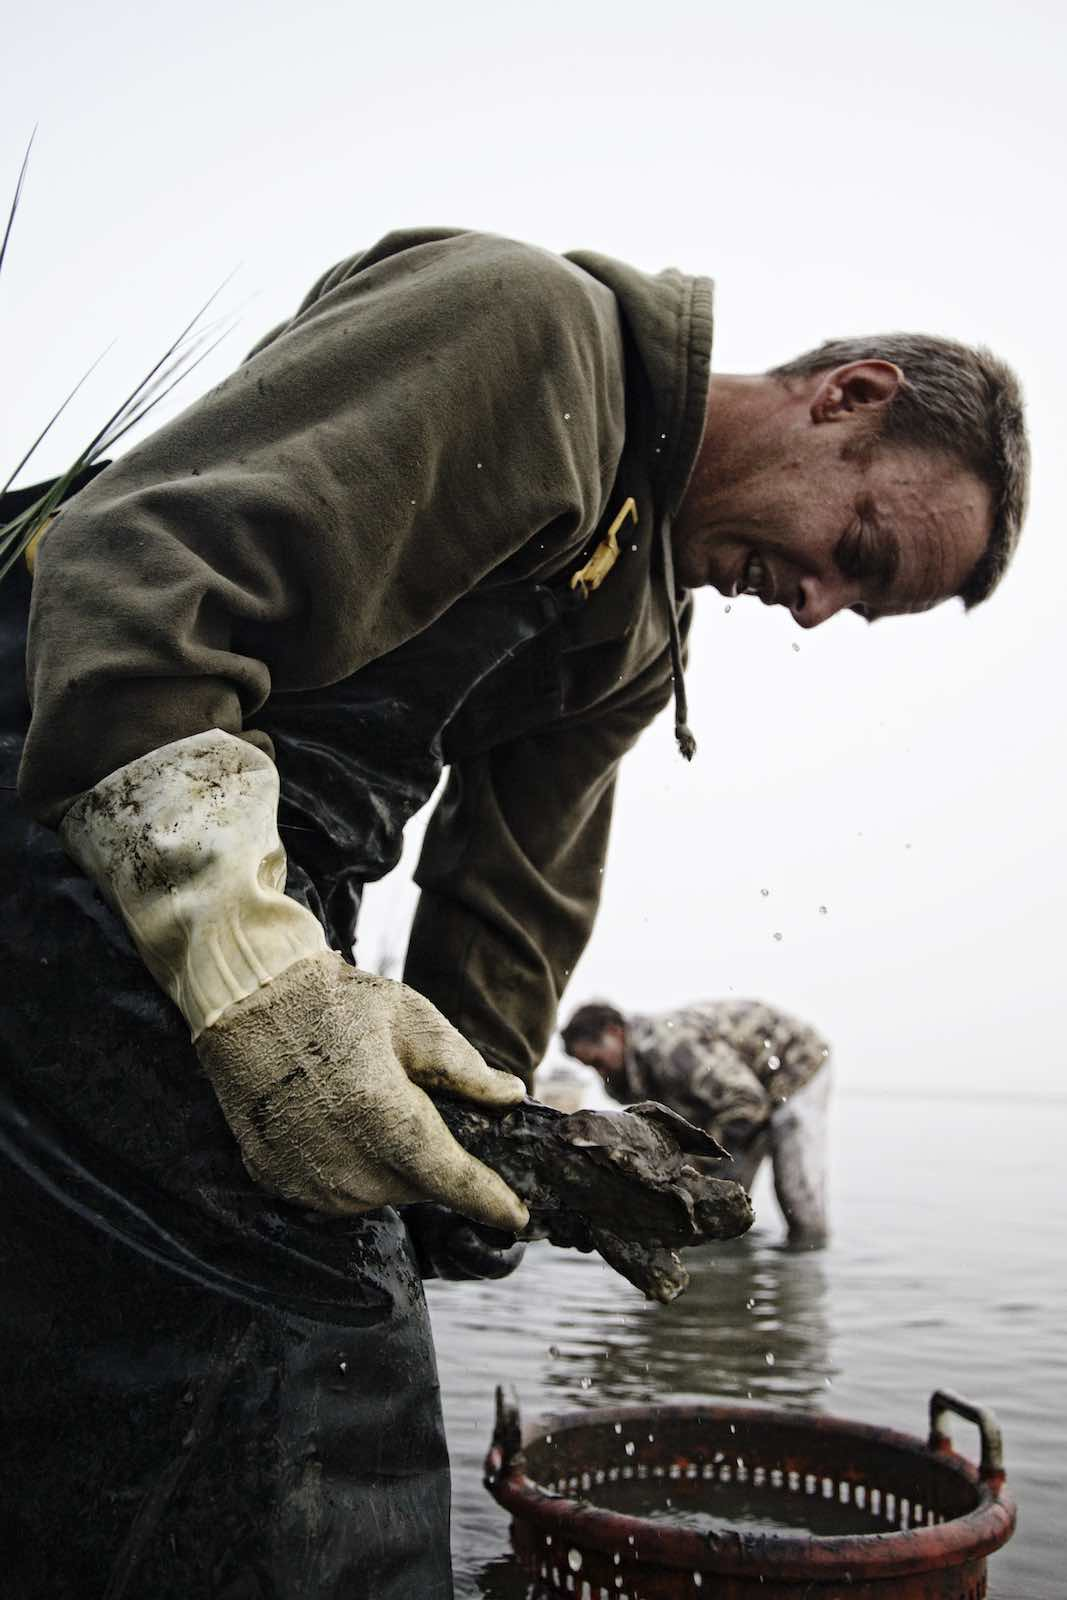 Fisherman wearing heavy gloves and collecting oysters.